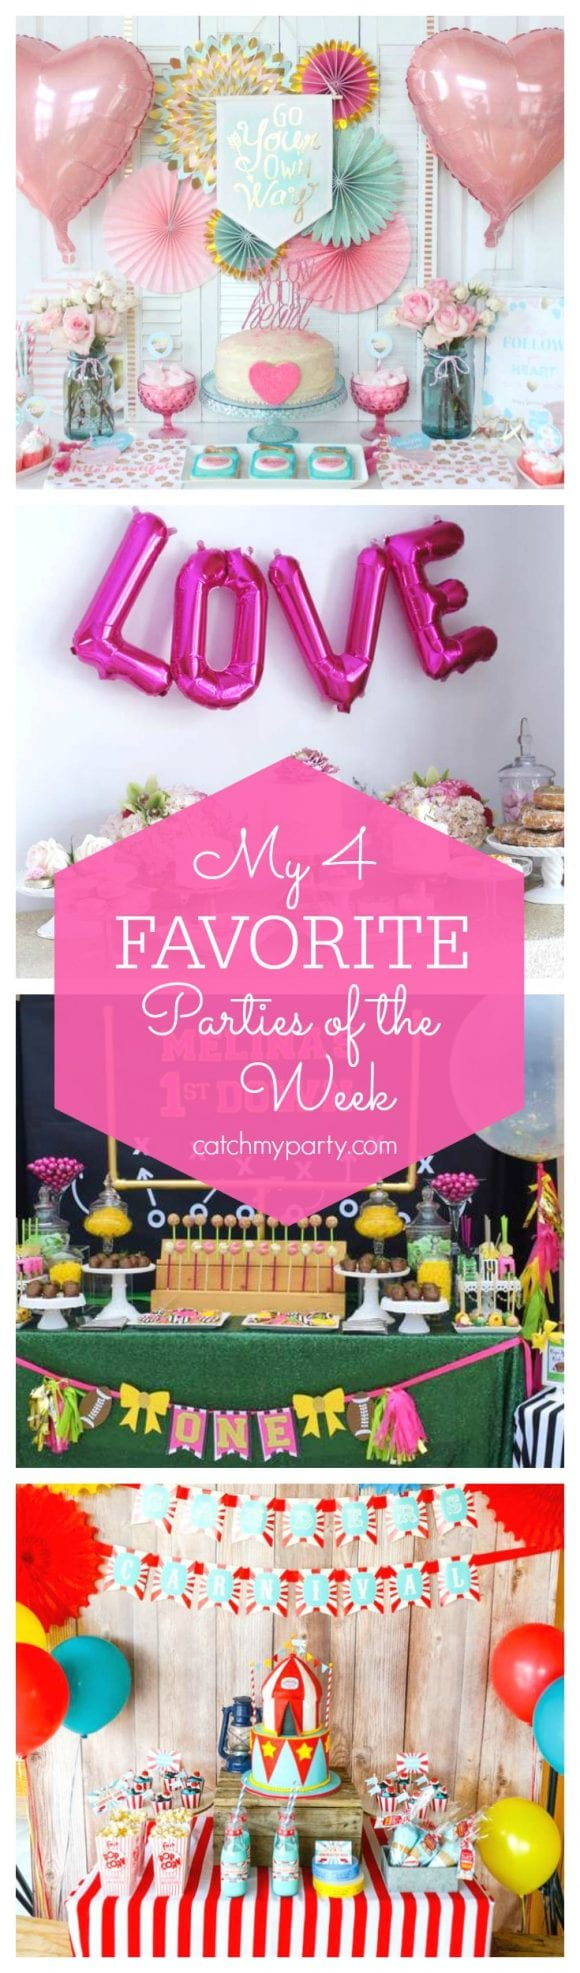 My 4 favorite parties of the week are a Galentines Valentine's day party, a Valentines Galentines Brunch, a Girls Football 1st birthday party and a Family Backyard Carnival party!